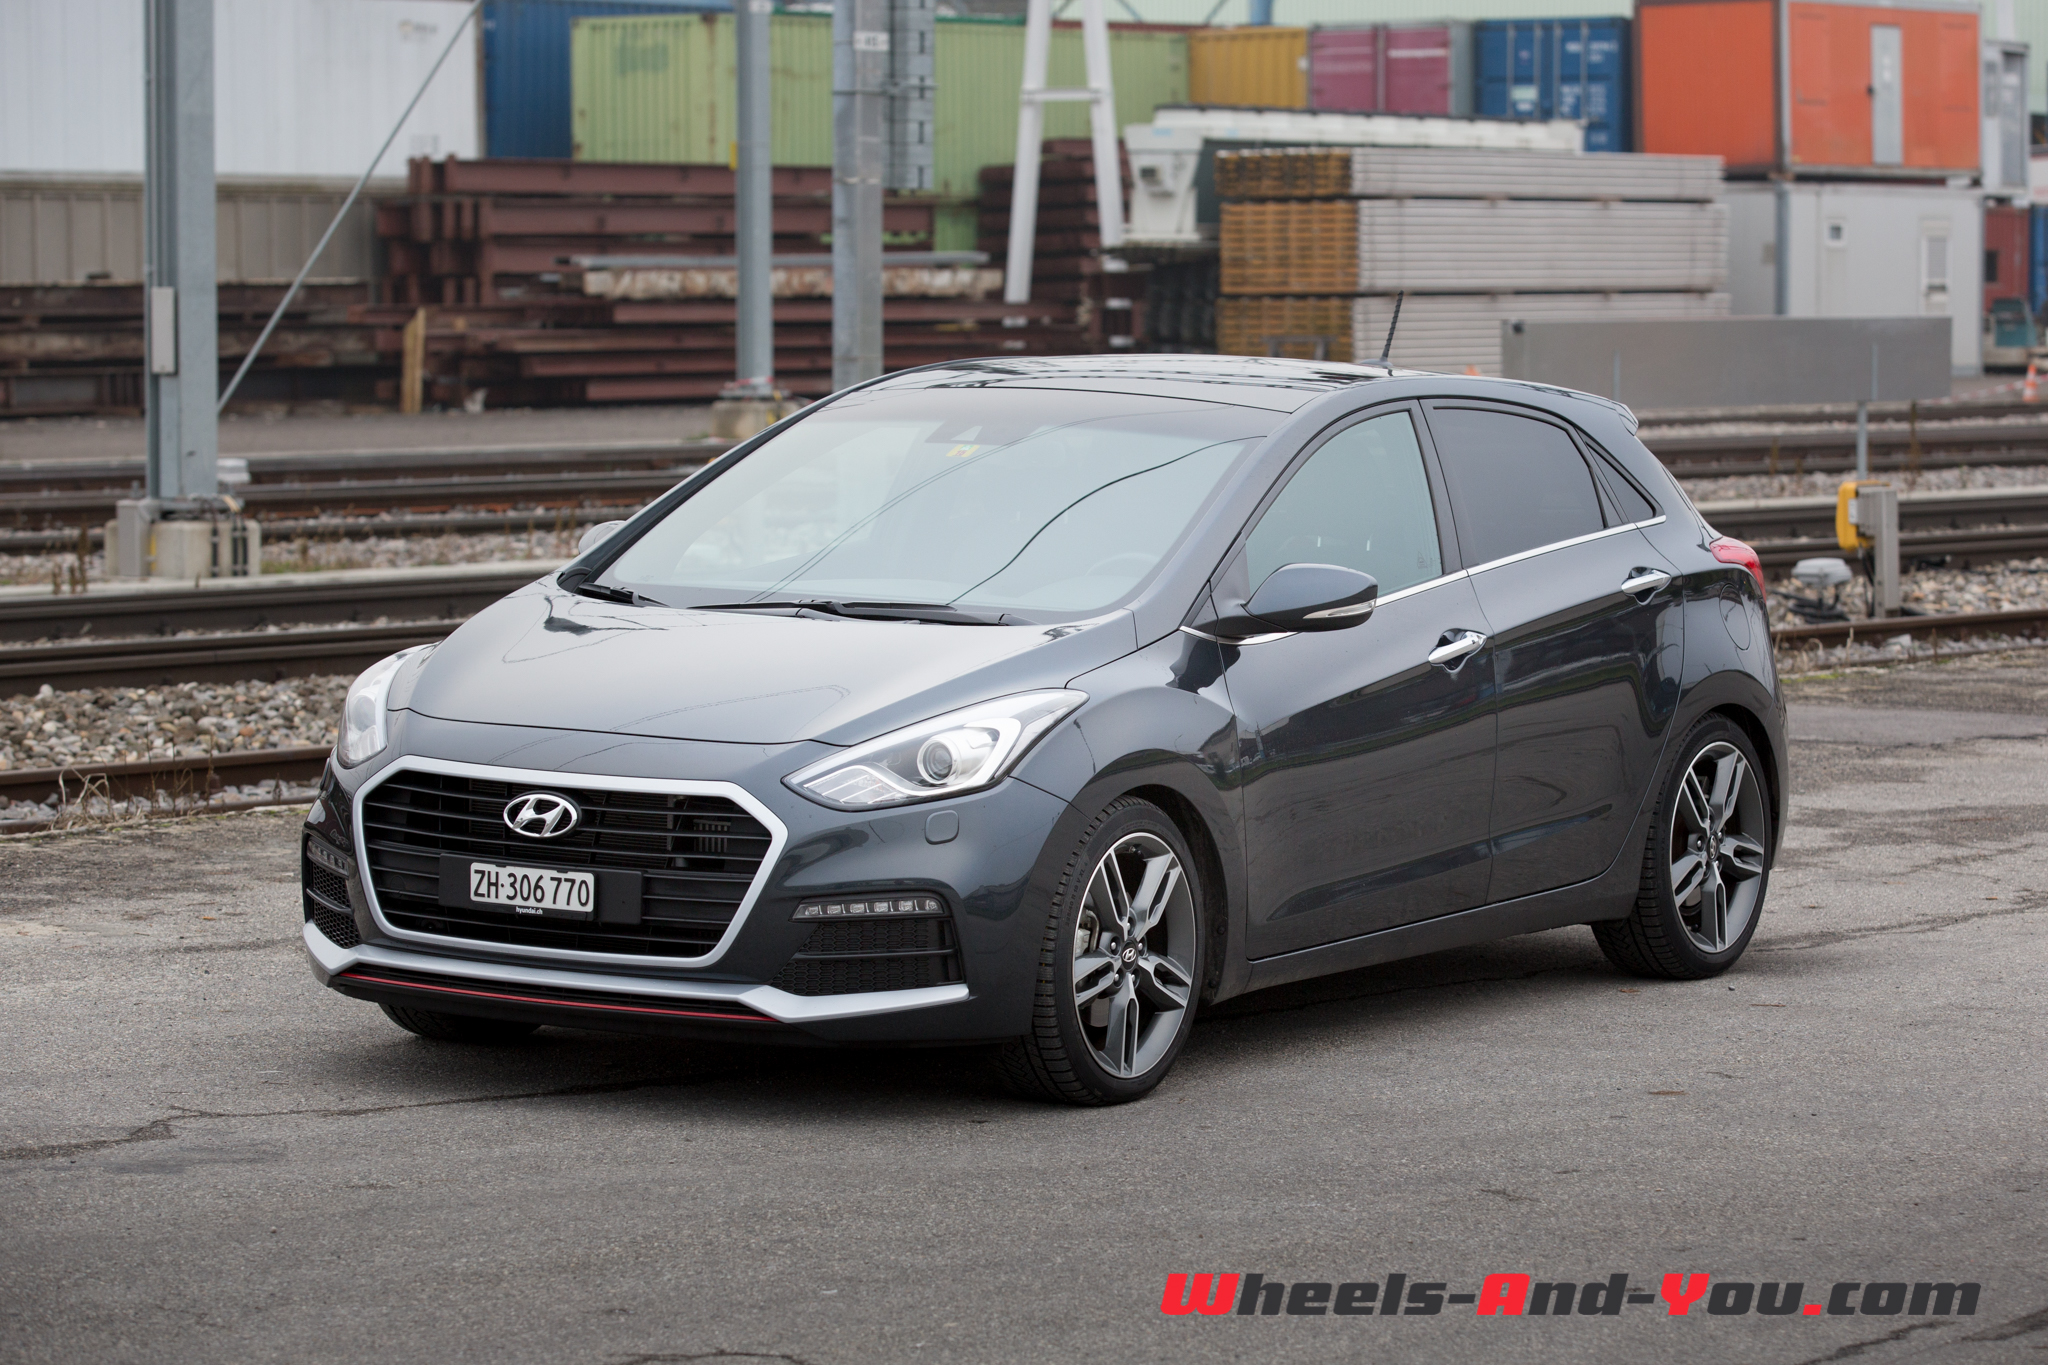 Hyundai i30turbo-5